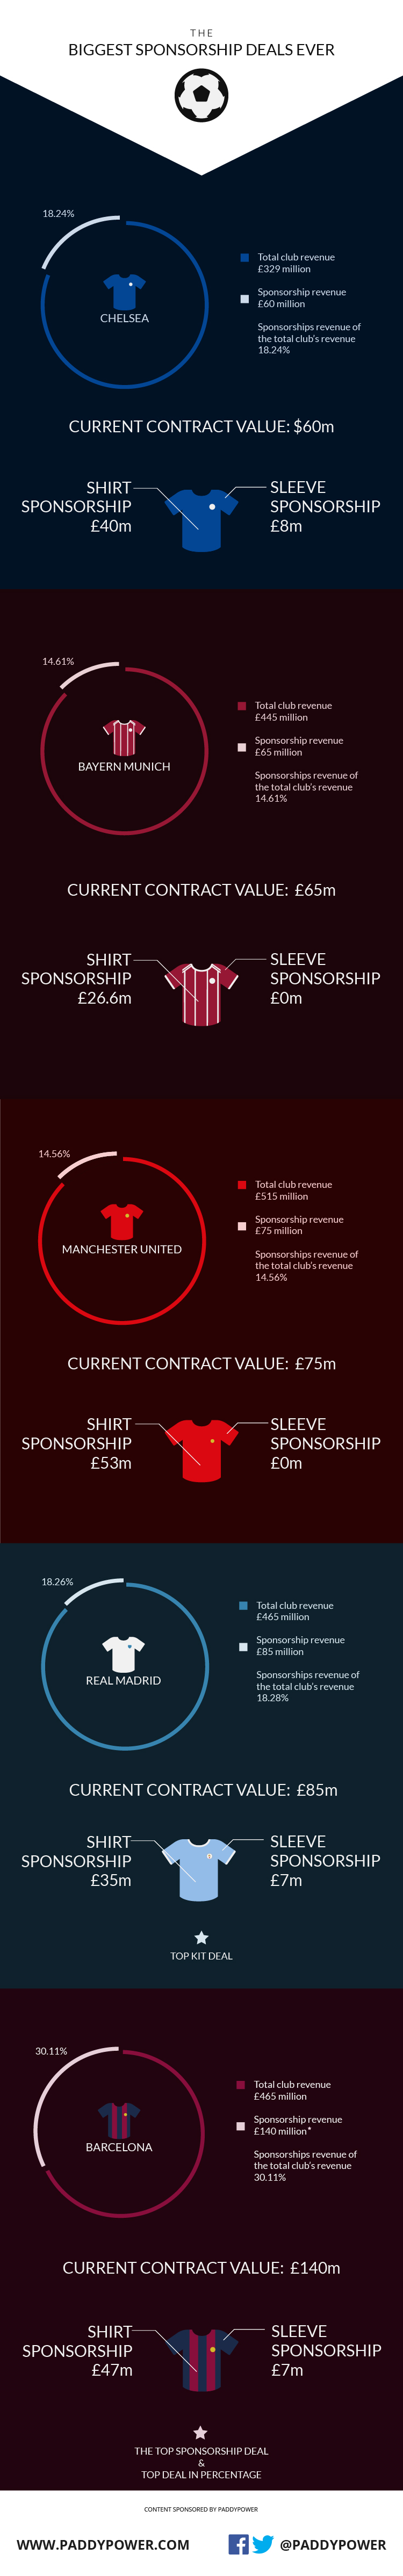 football sponsorship deals-infographic